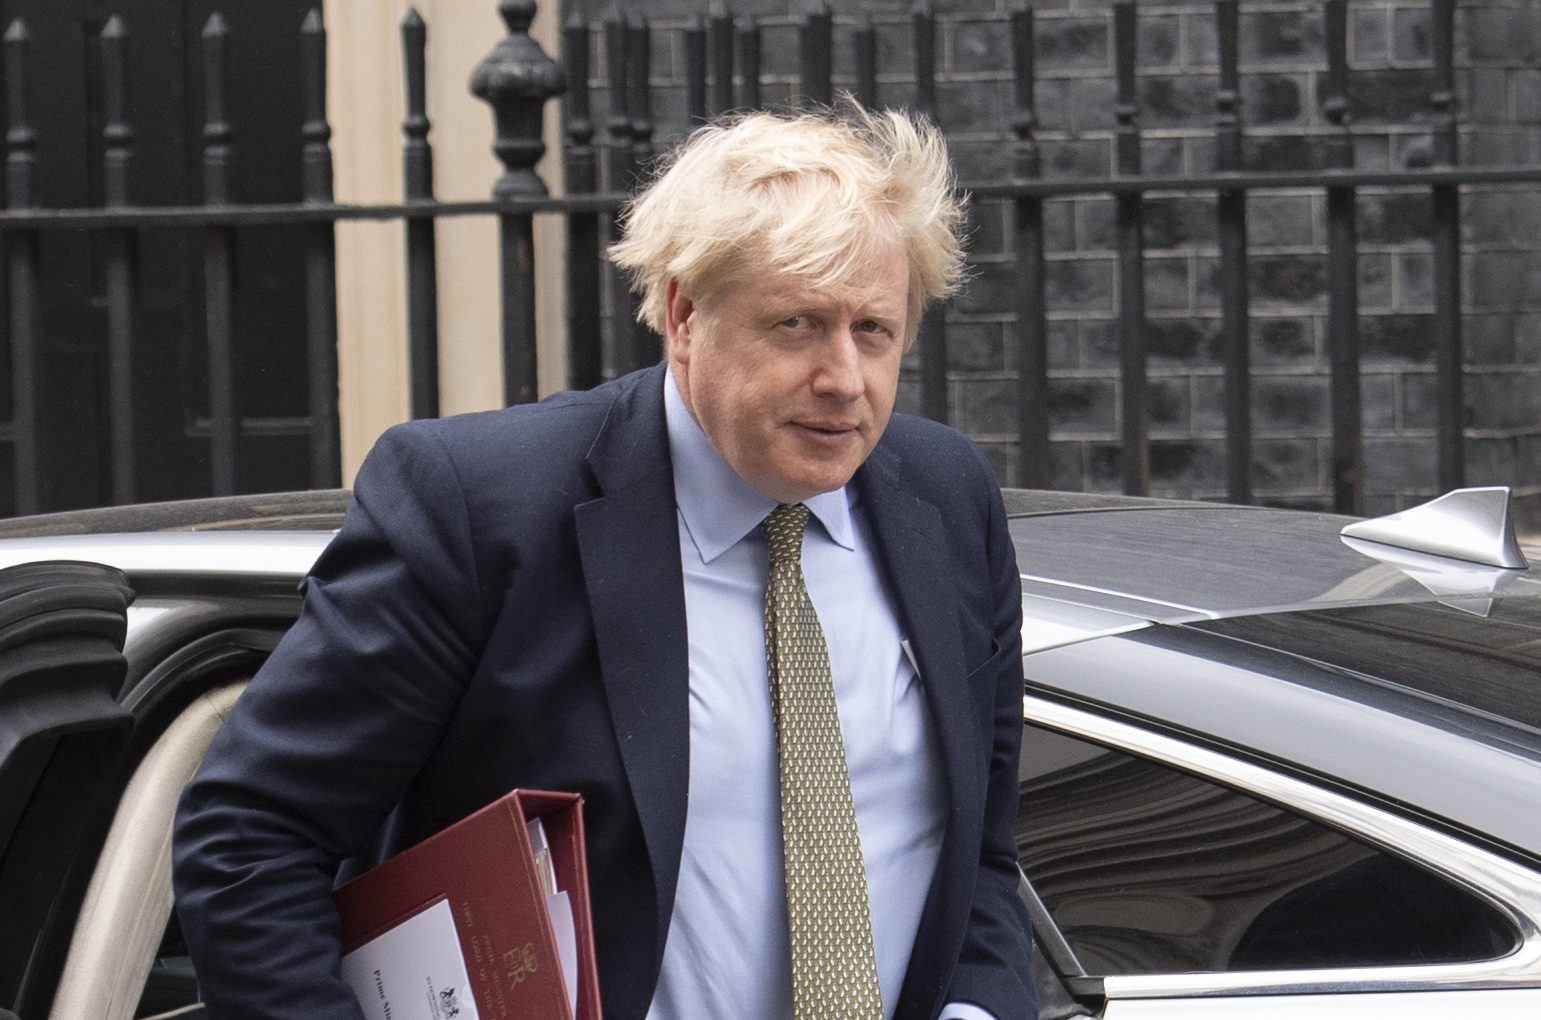 Boris Johnson. Coronavirus: Brits start up Clap for Boris Johnson campaign to support Prime Minister in intensive care